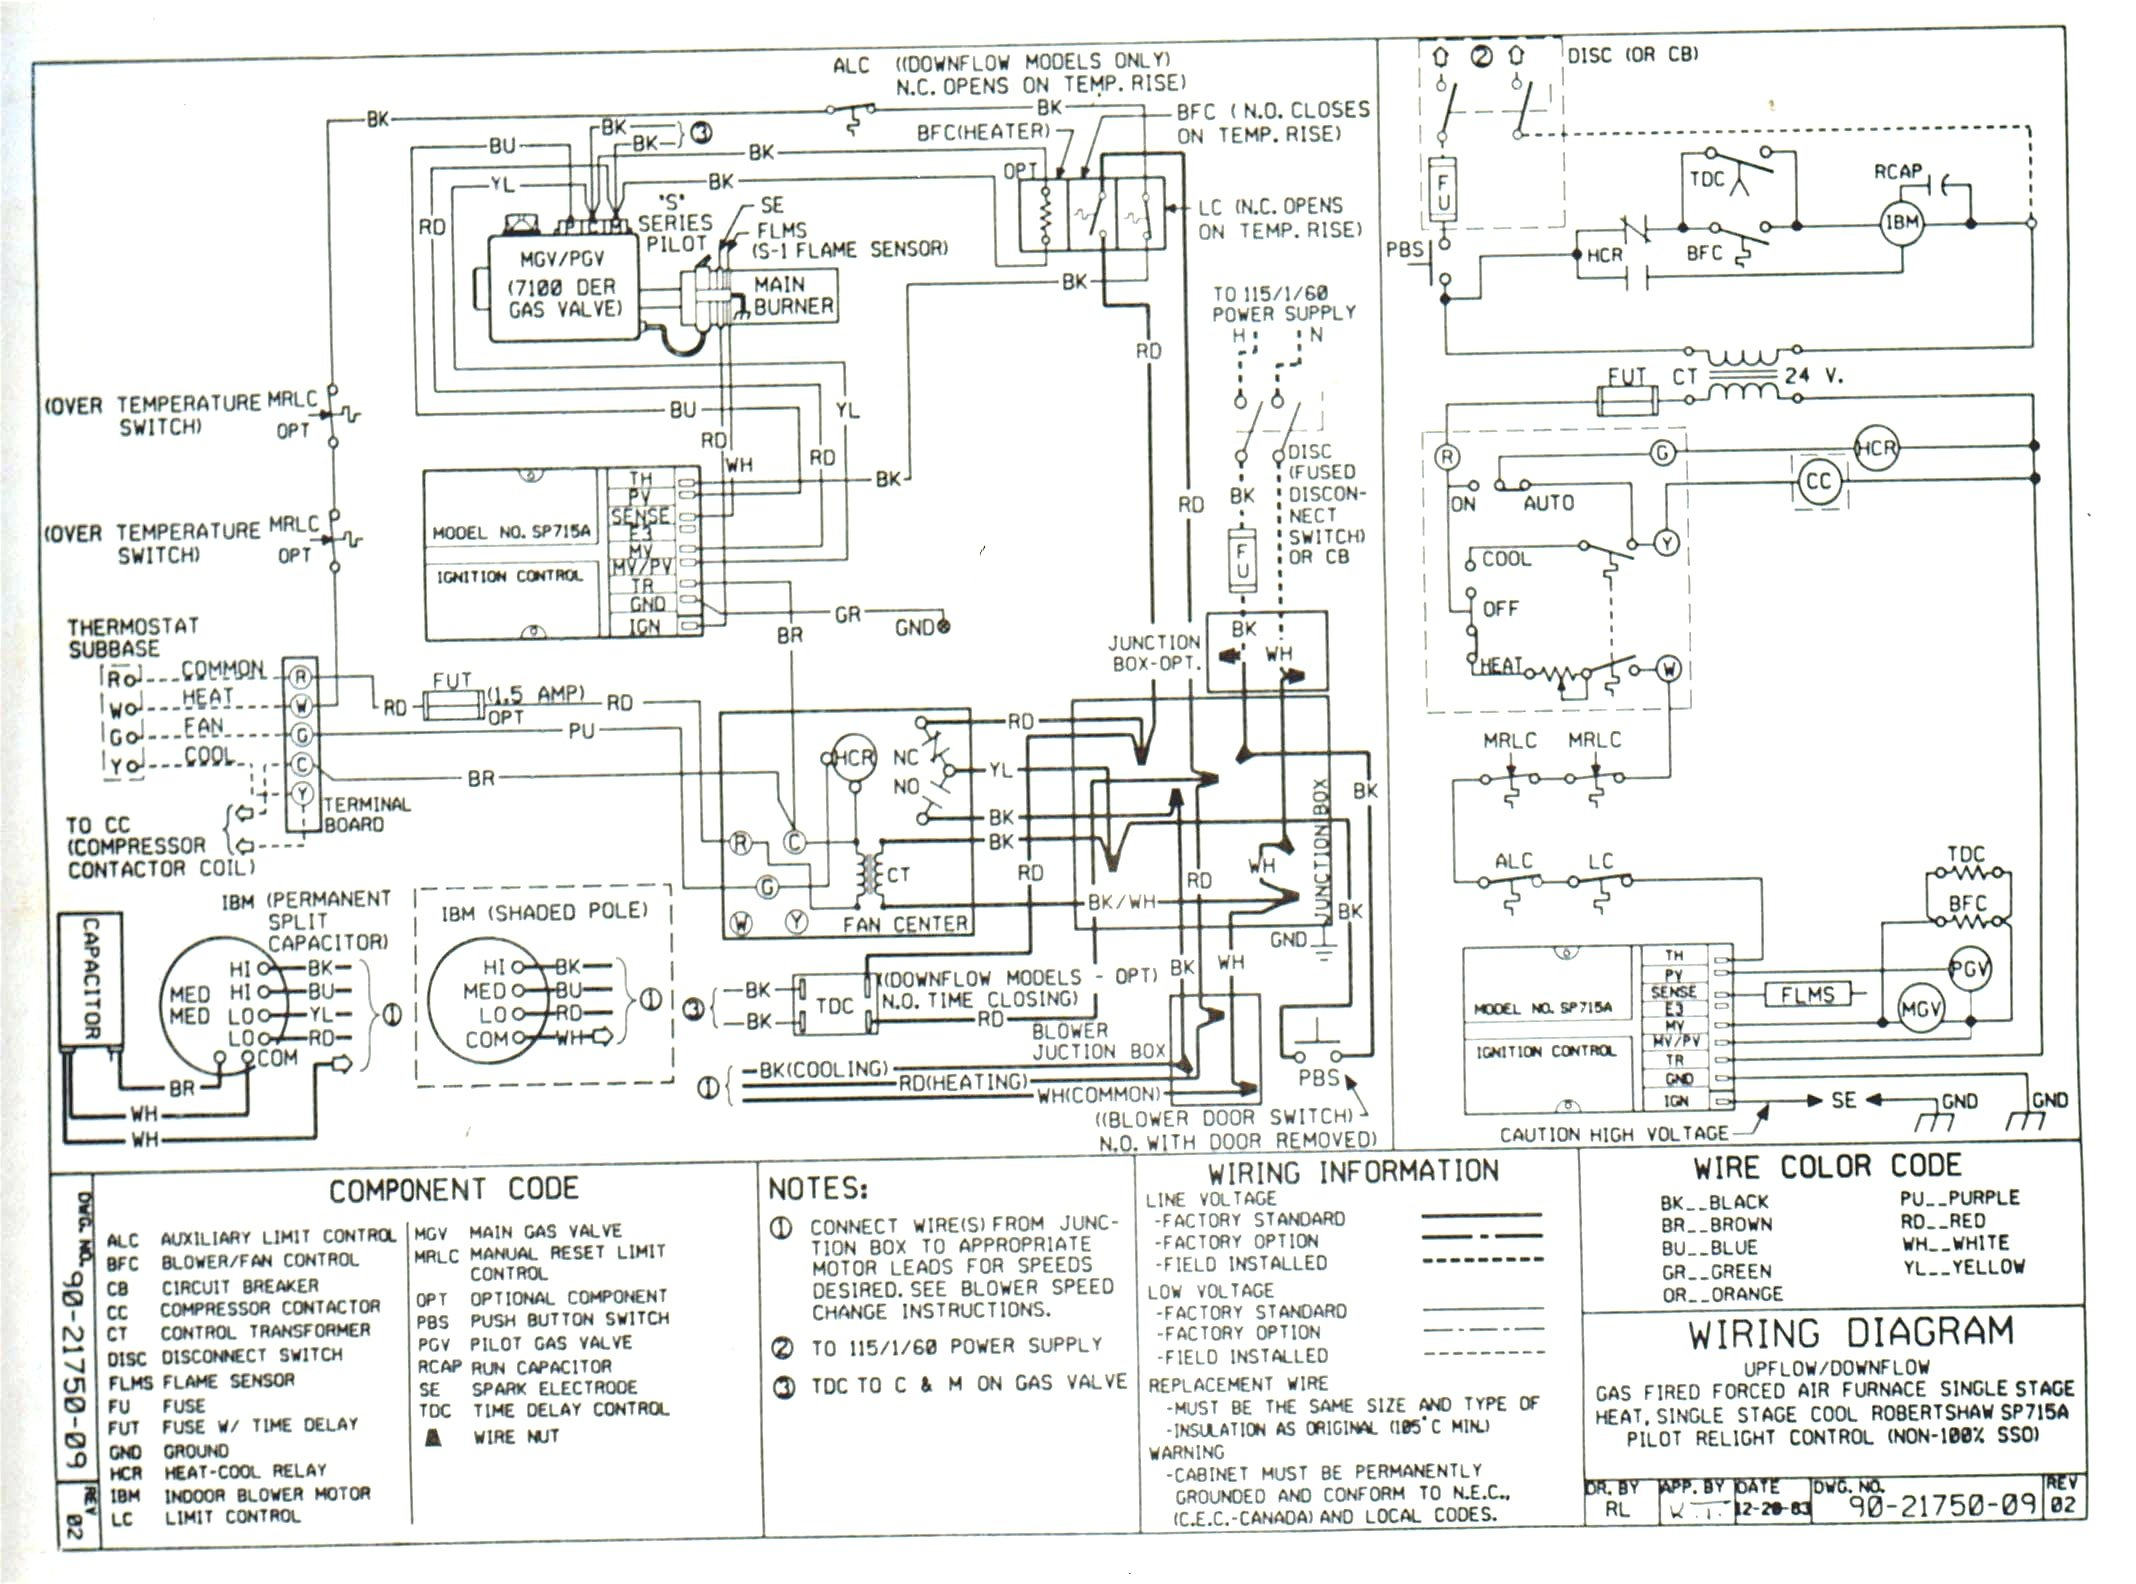 Goodman Electric Heater Wiring Diagram - Wiring Solutions